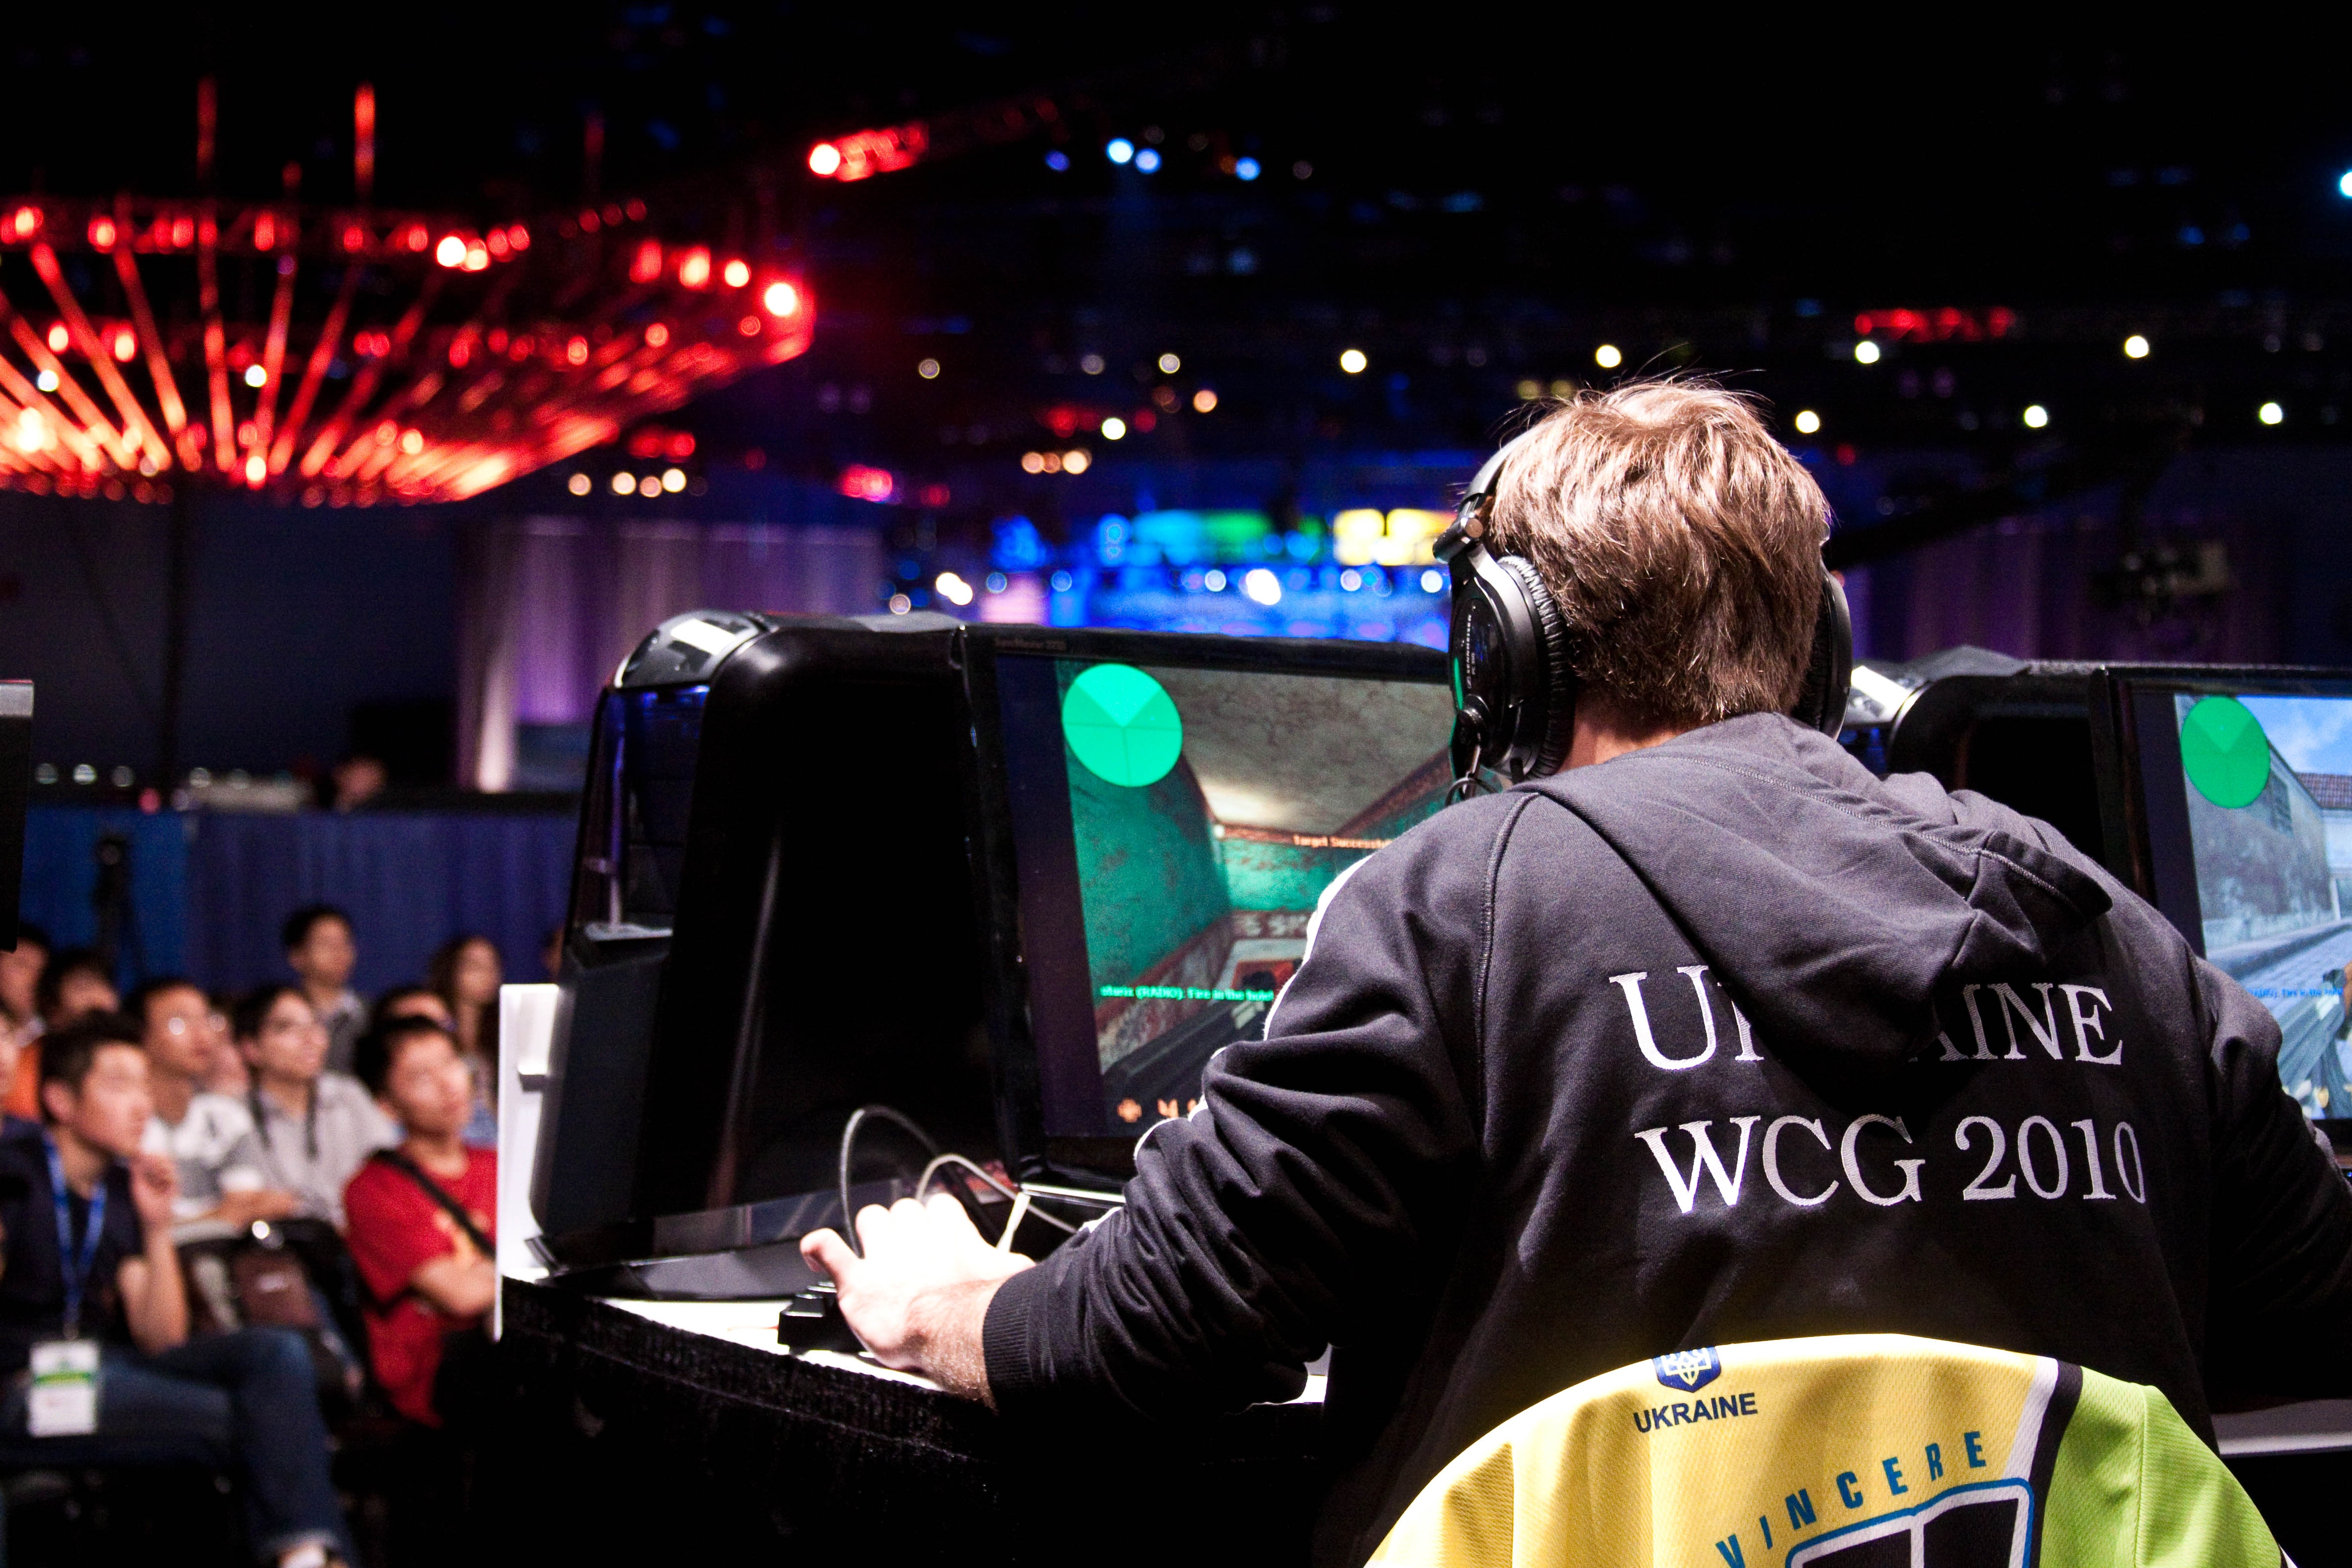 Wcg Counter Strike Скачать